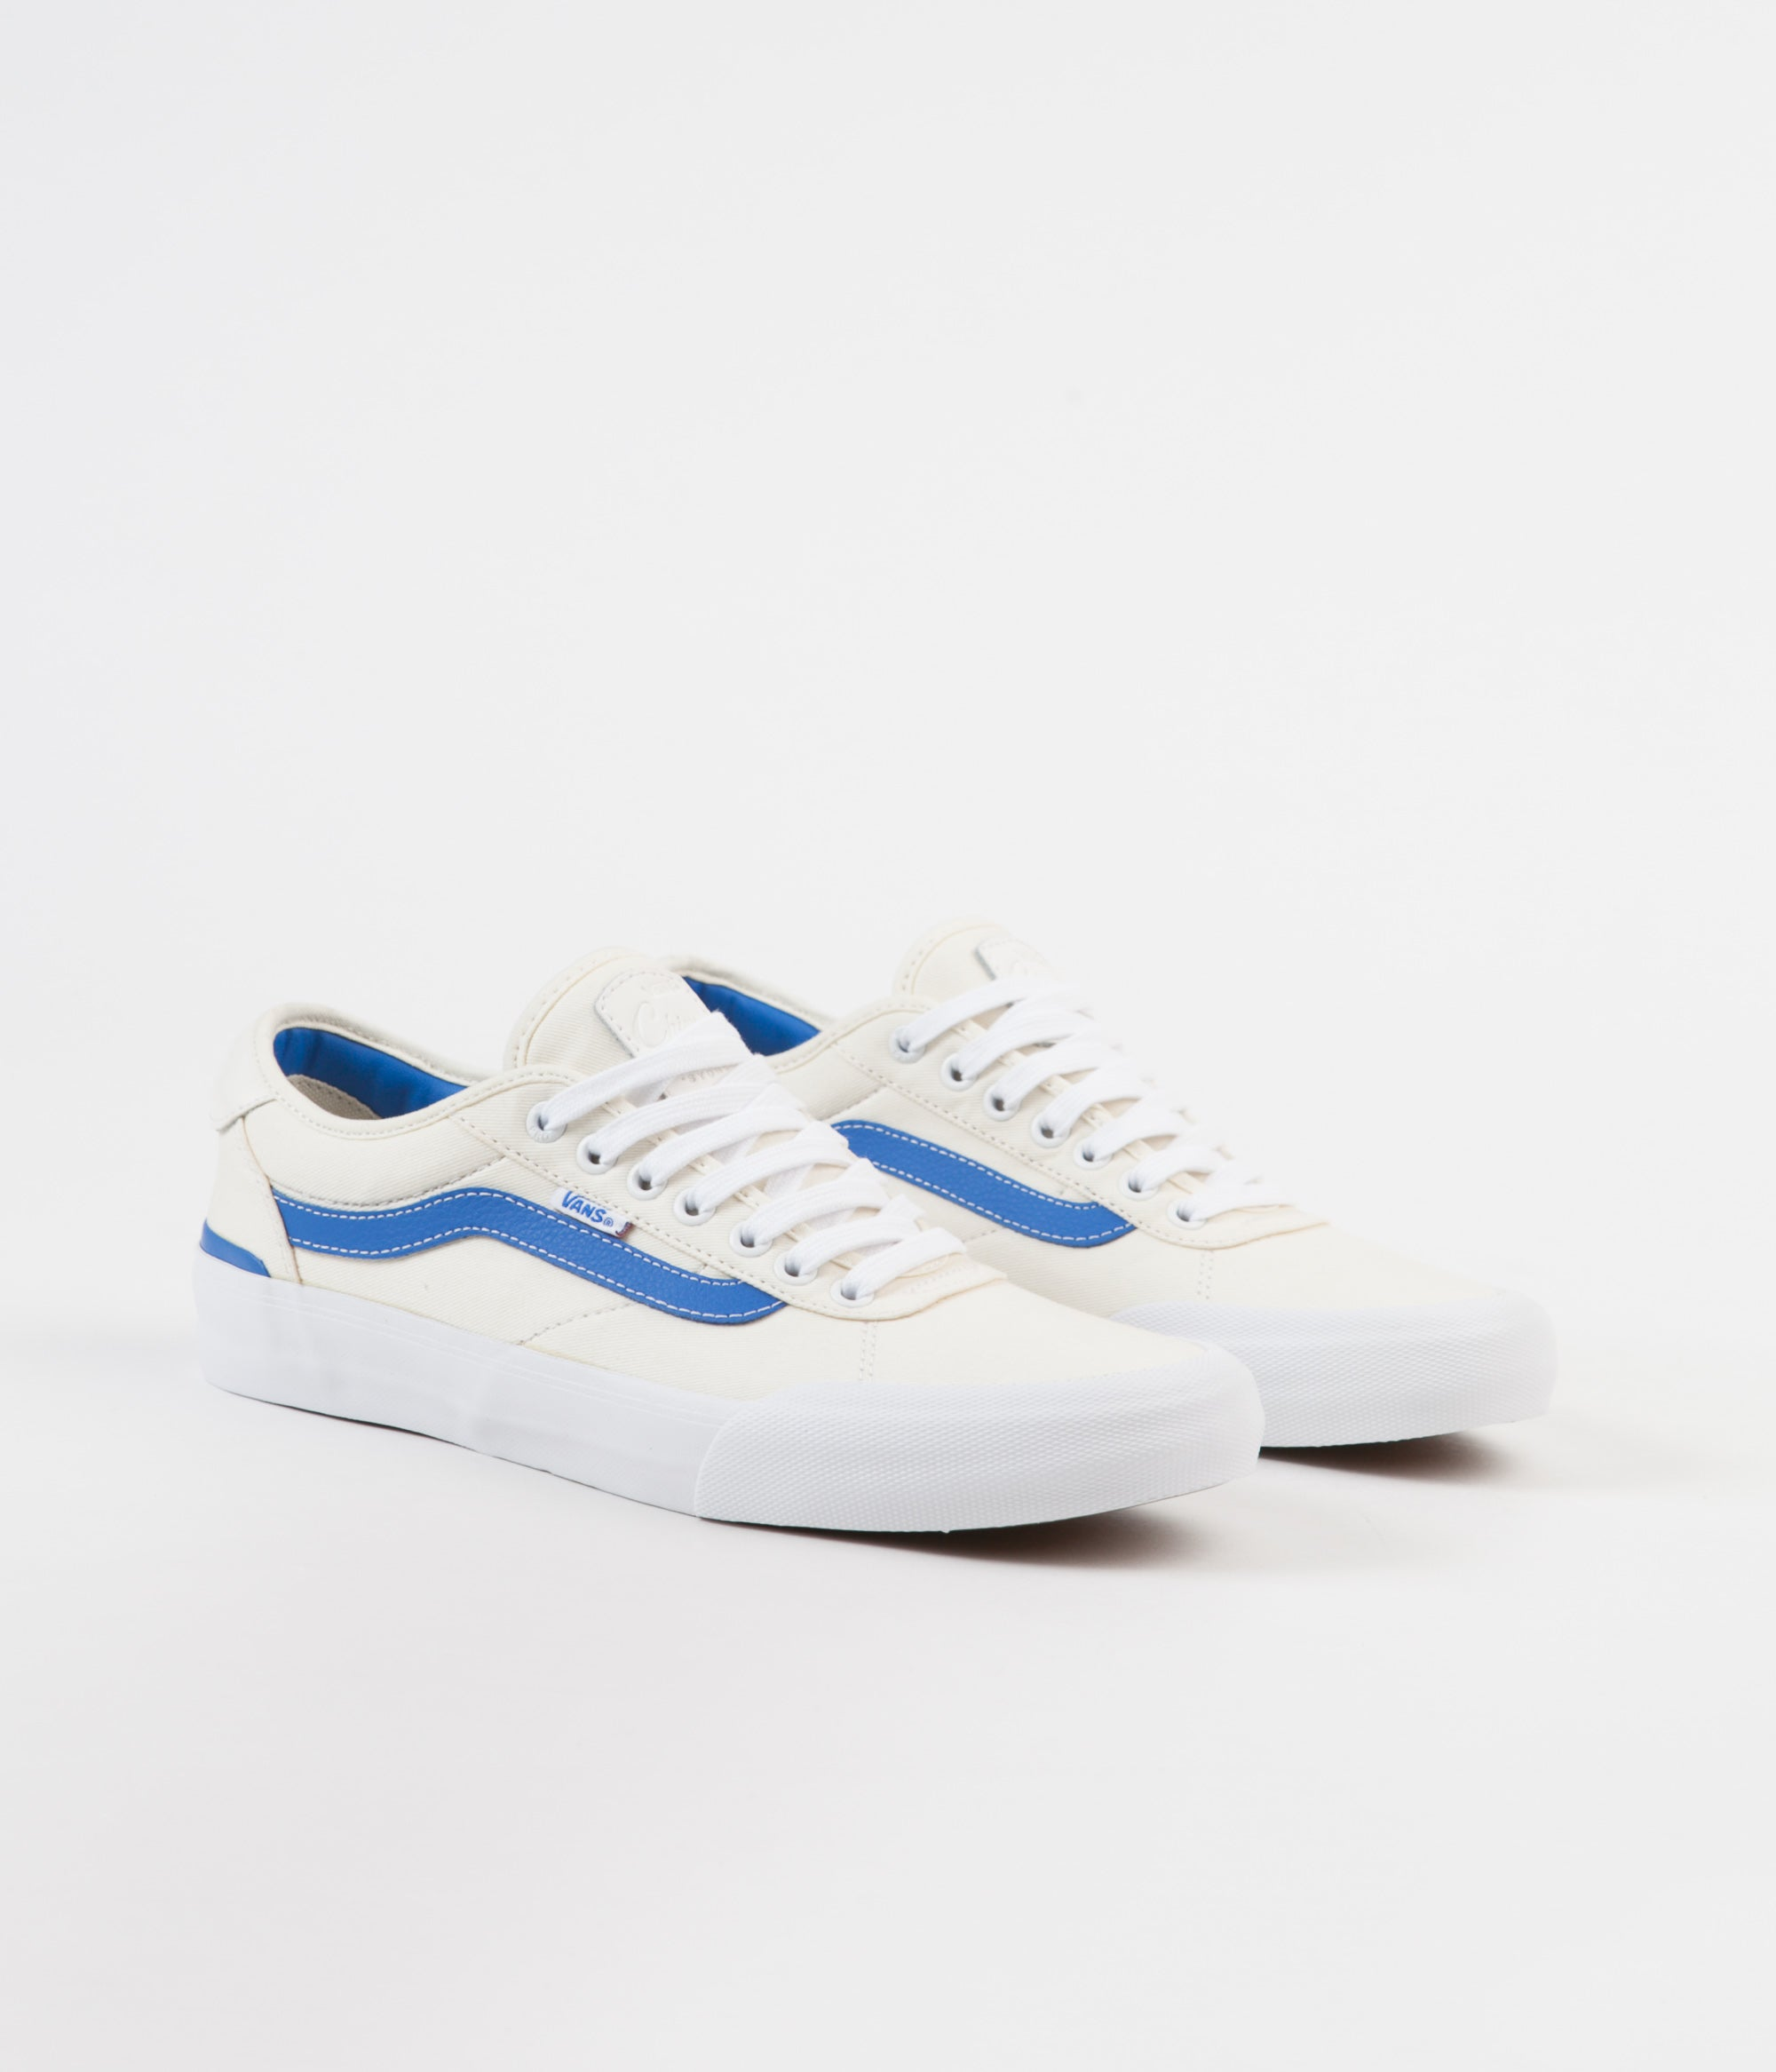 Vans Chima Pro Centre Court Shoes - Classic White / Victoria Blue